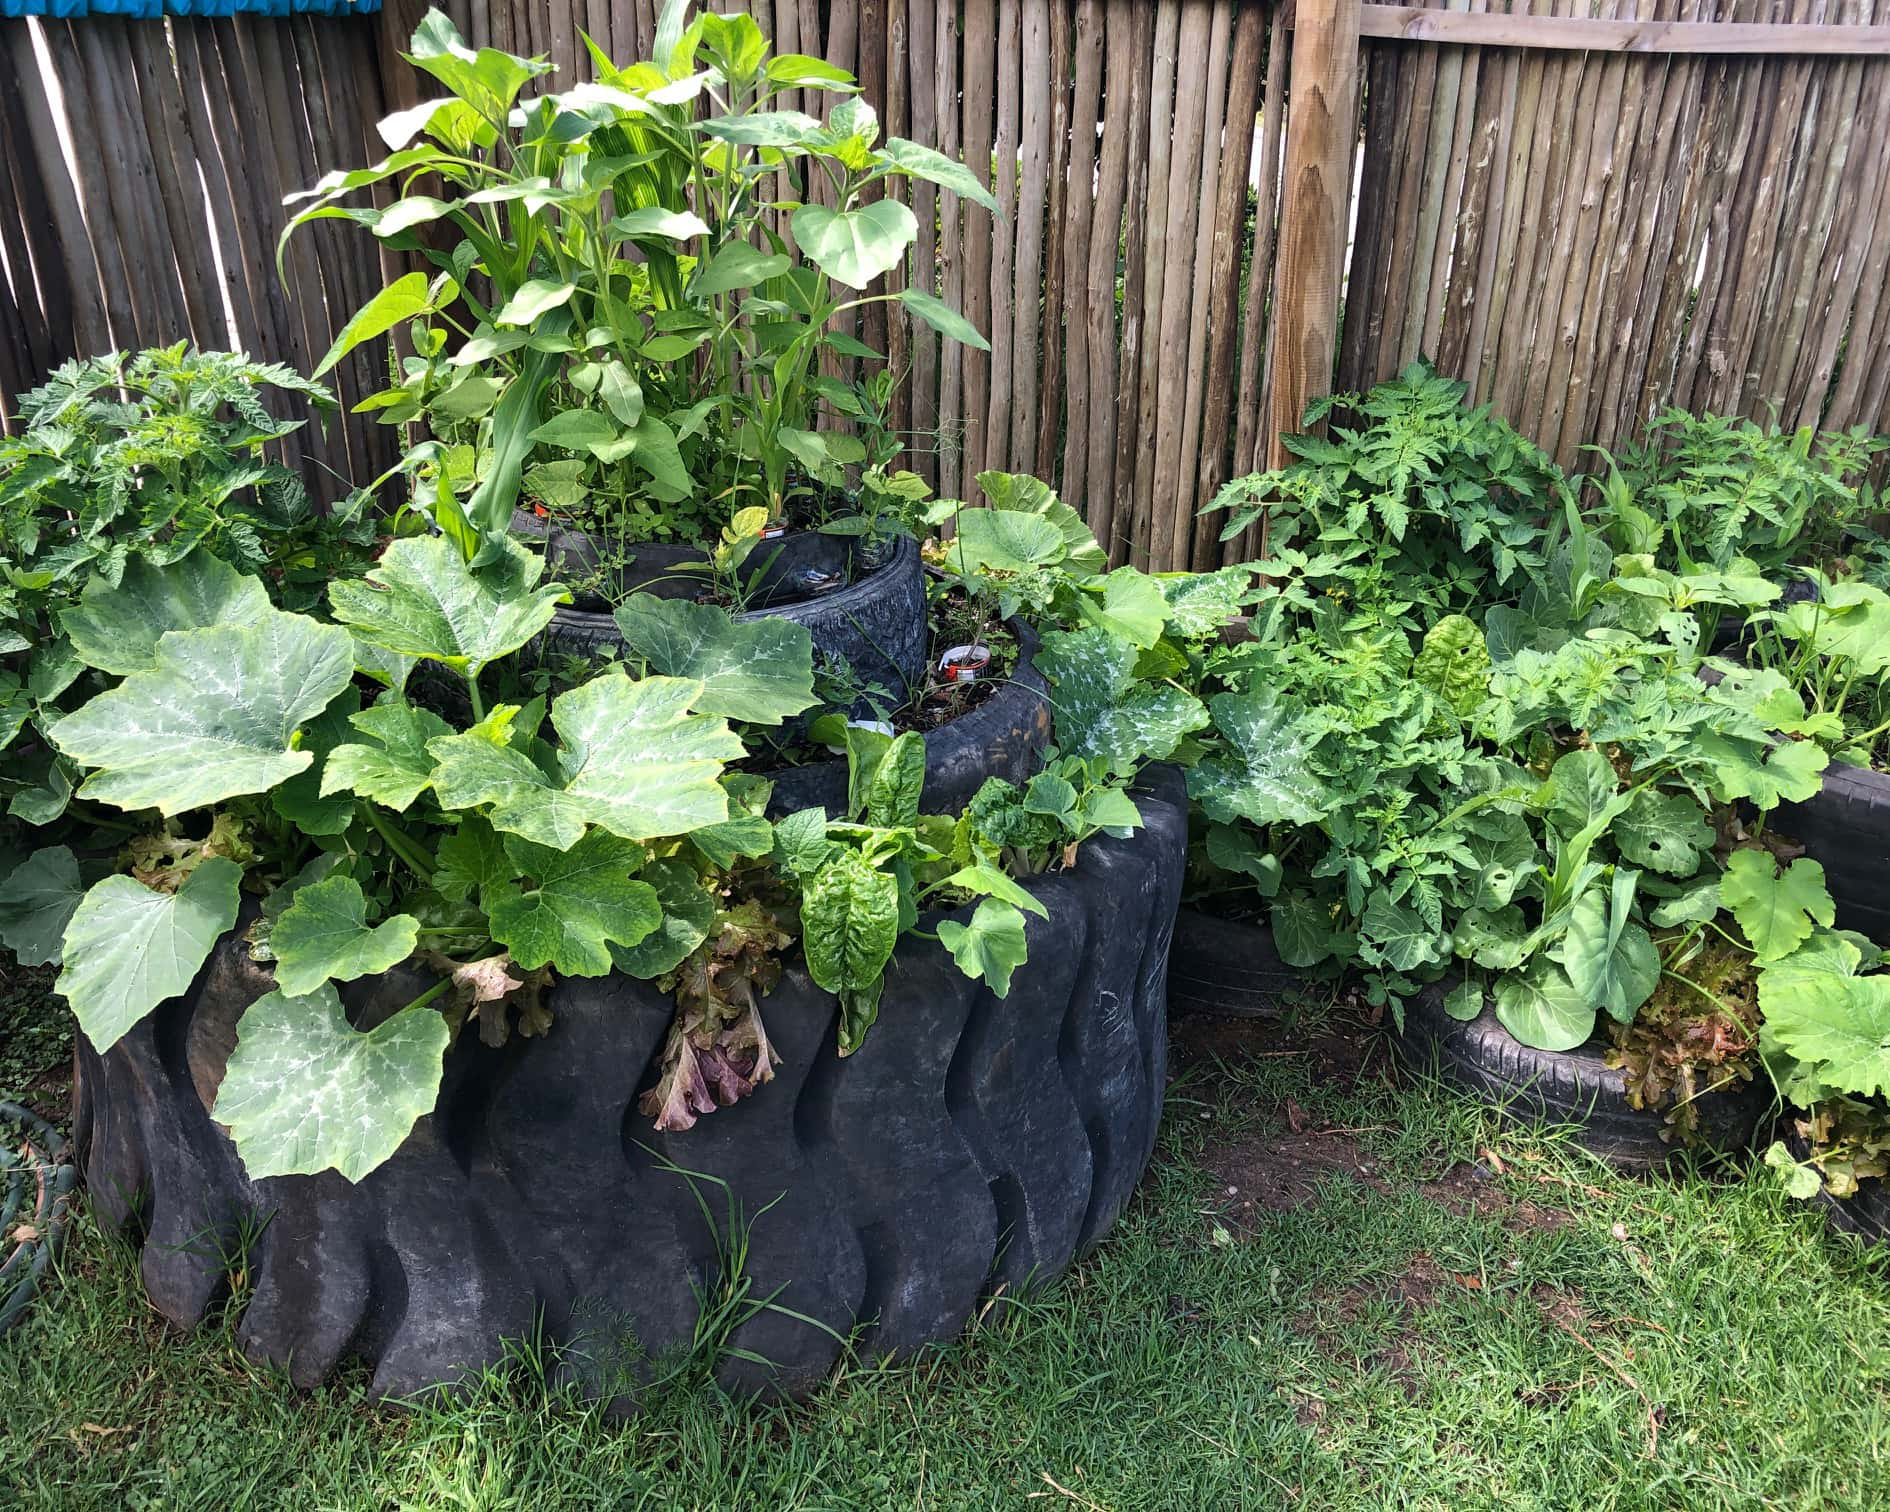 A flourishing tyre garden from the Mungo MOVE permaculture workshop